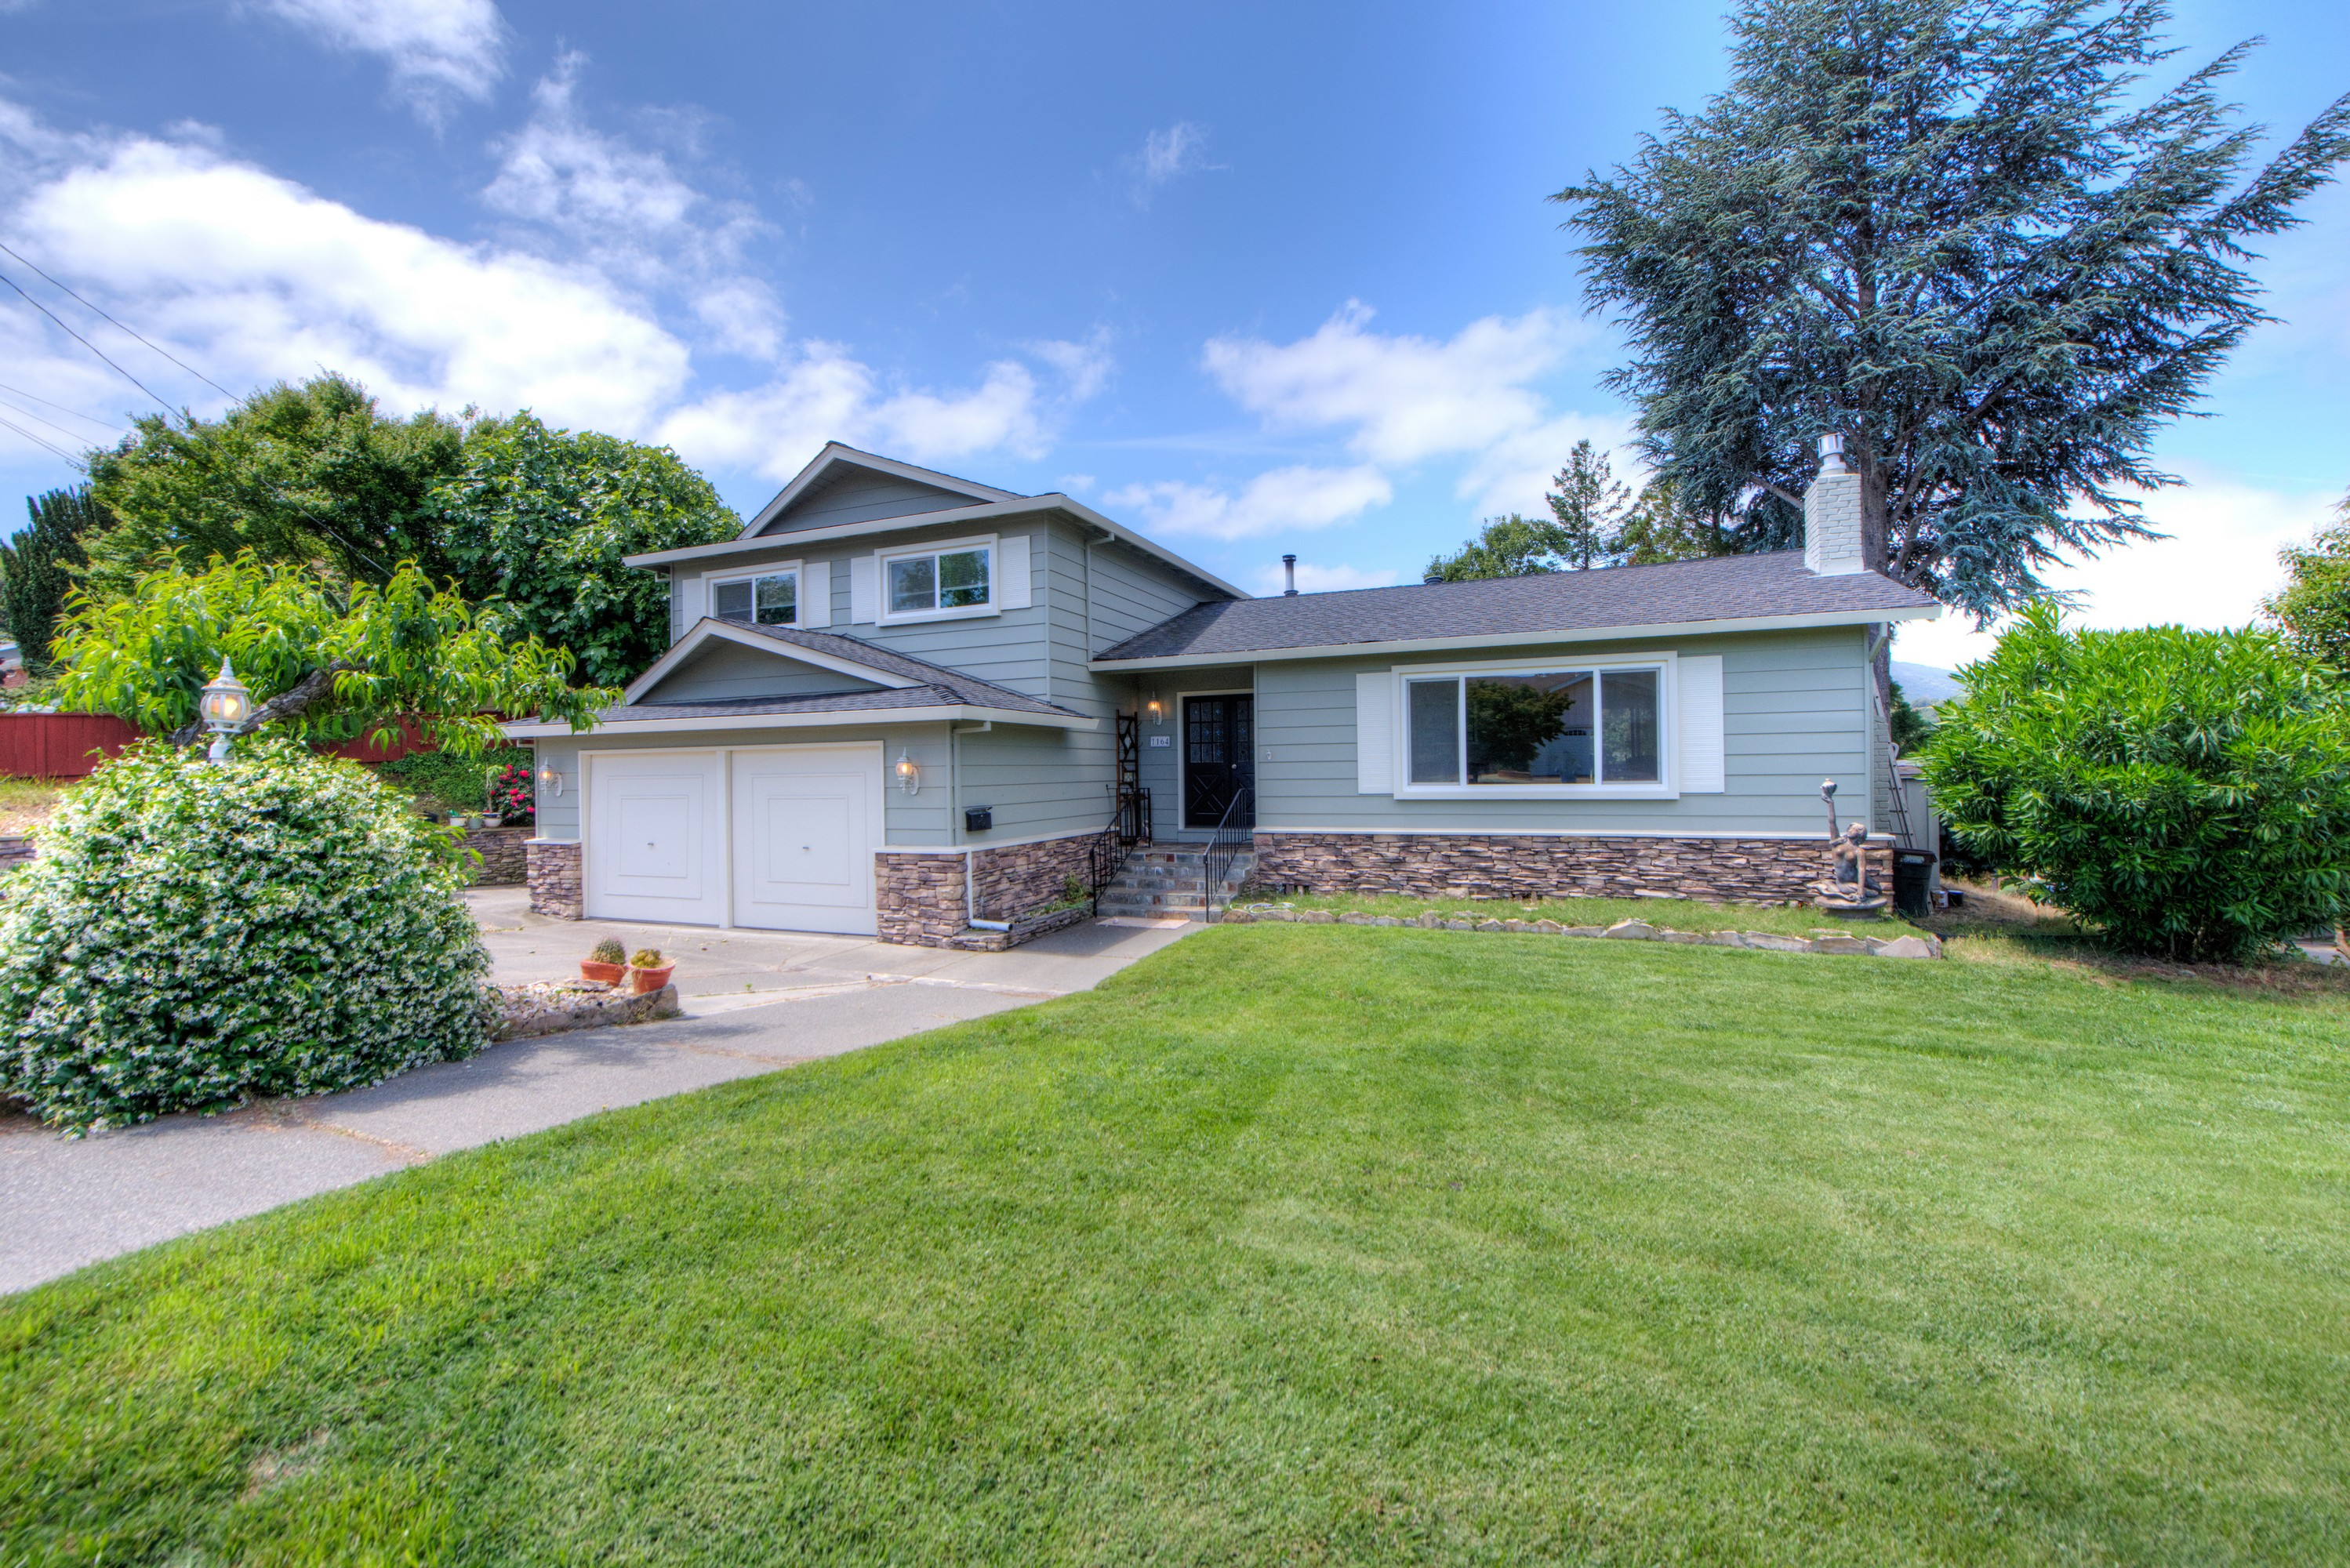 Single Family Home for Sale at Sutter Hills Neighborhood with Views 1164 Midway Court Novato, California, 94947 United States